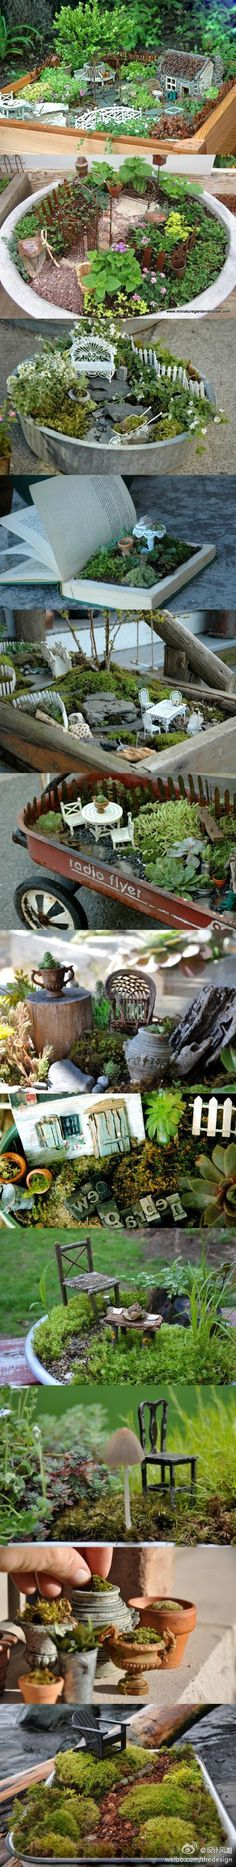 fairy gardens - little big things! love these so much.